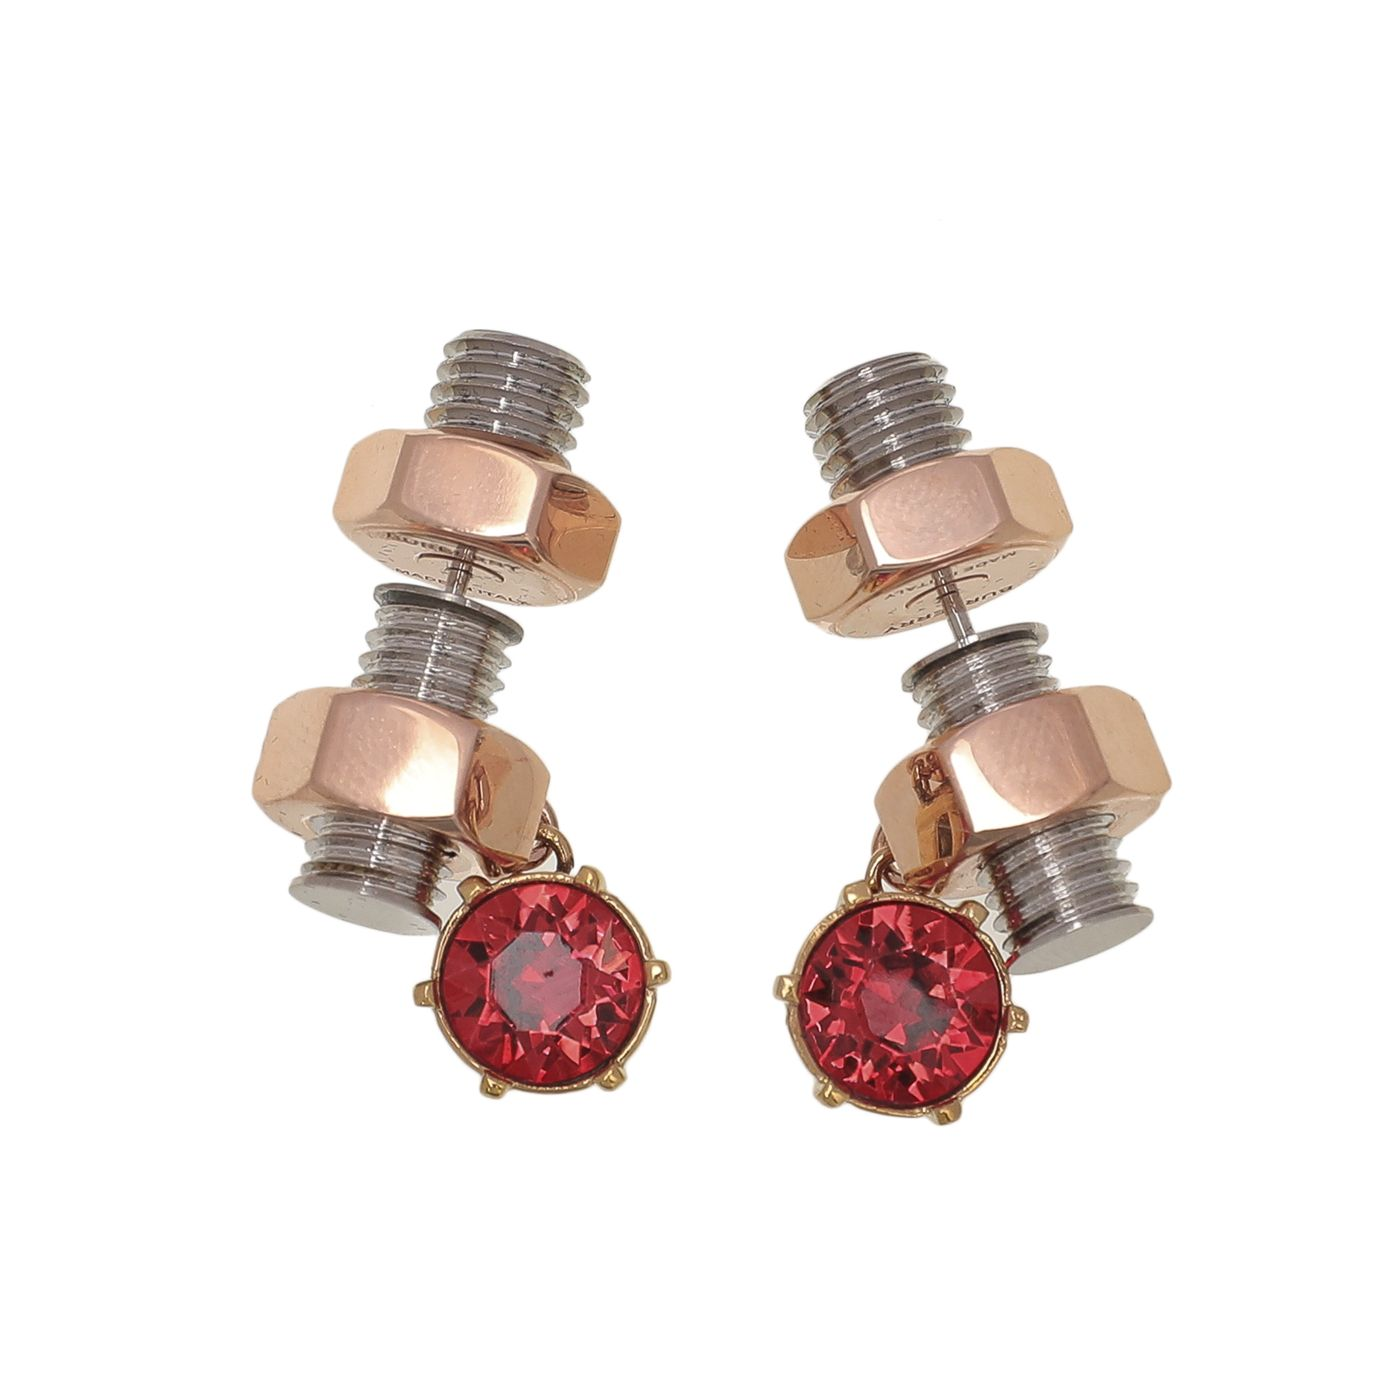 Burberry Nut And Bolt Charm Earrings W/ Red Crystal